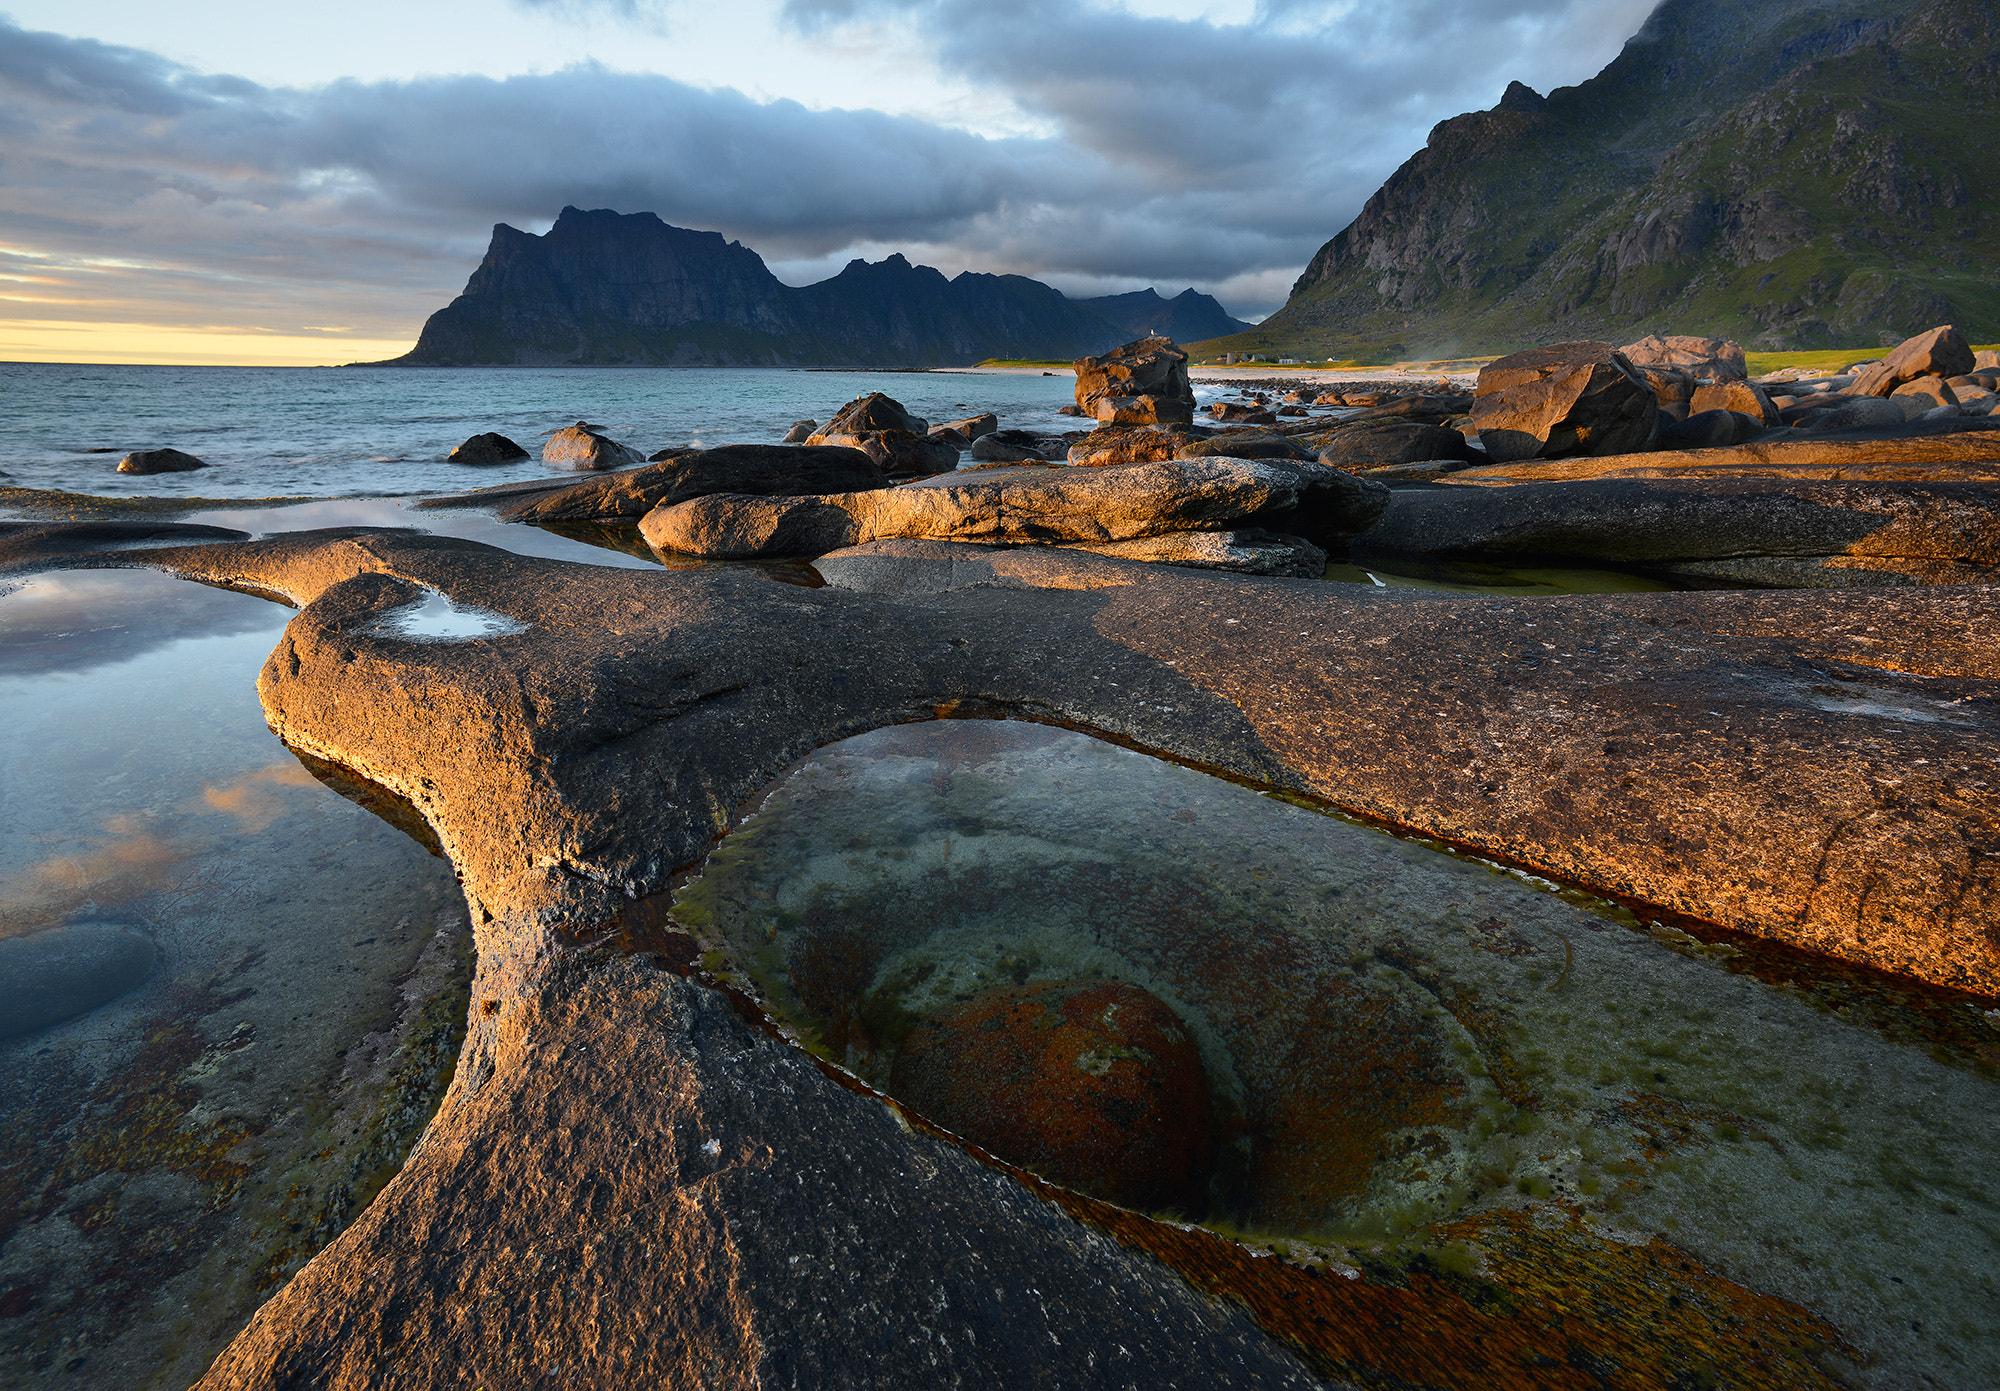 Photograph The Sea and the Stone. by Andre Ermolaev on 500px